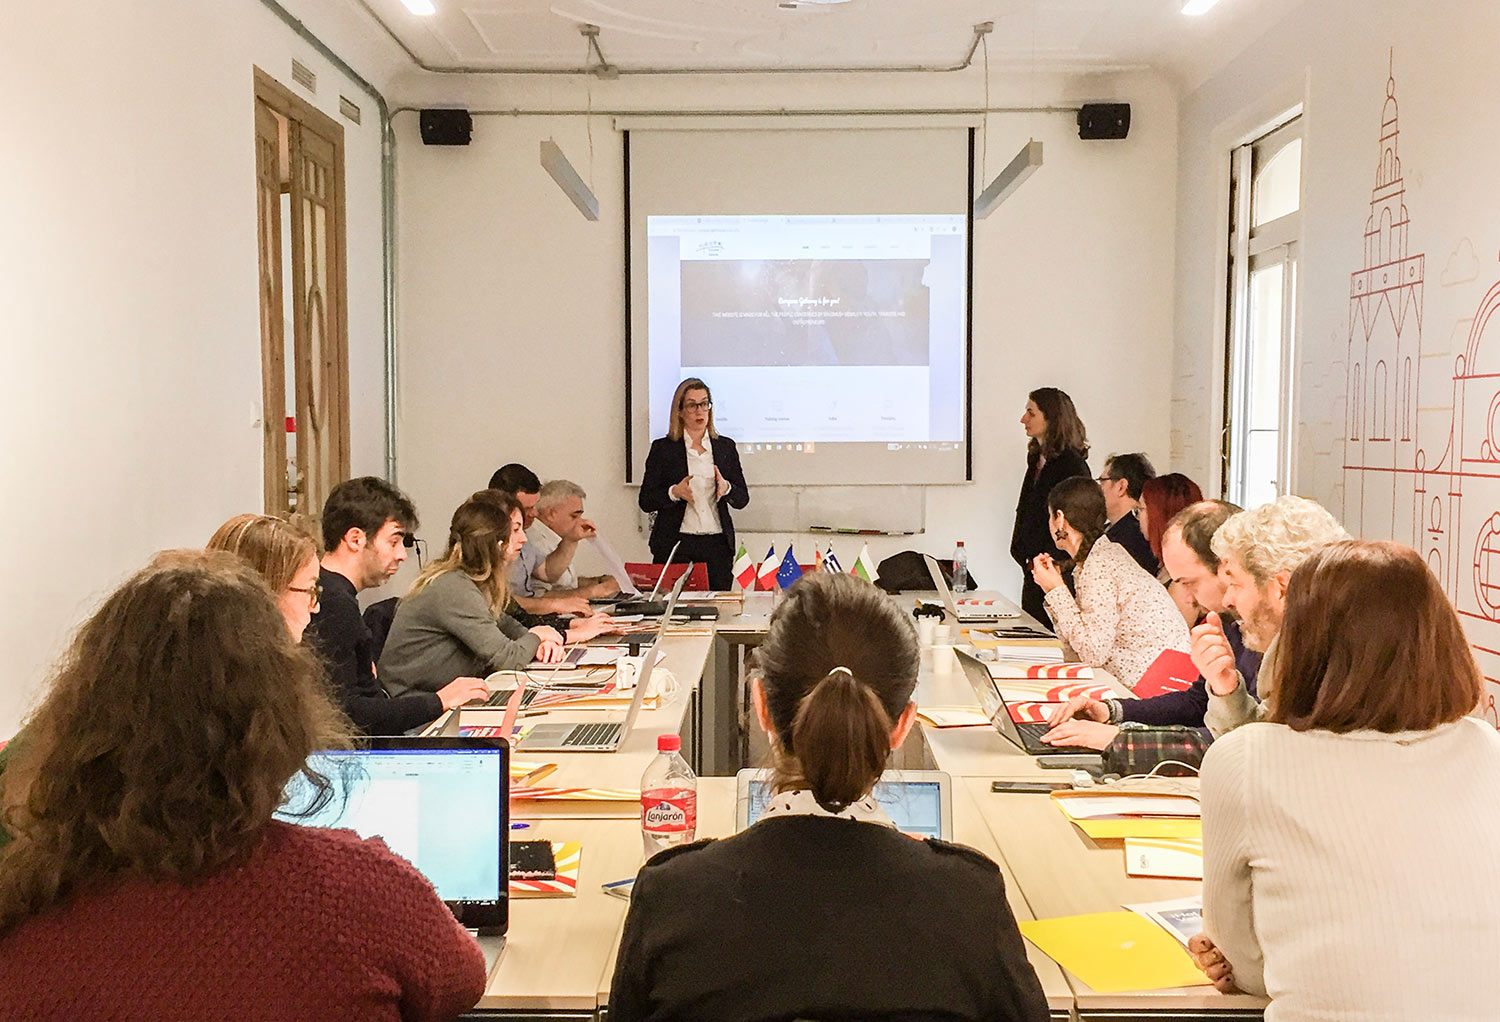 The European Gateway partners participated in the 7th Transnational meeting during Las Fallas festivity